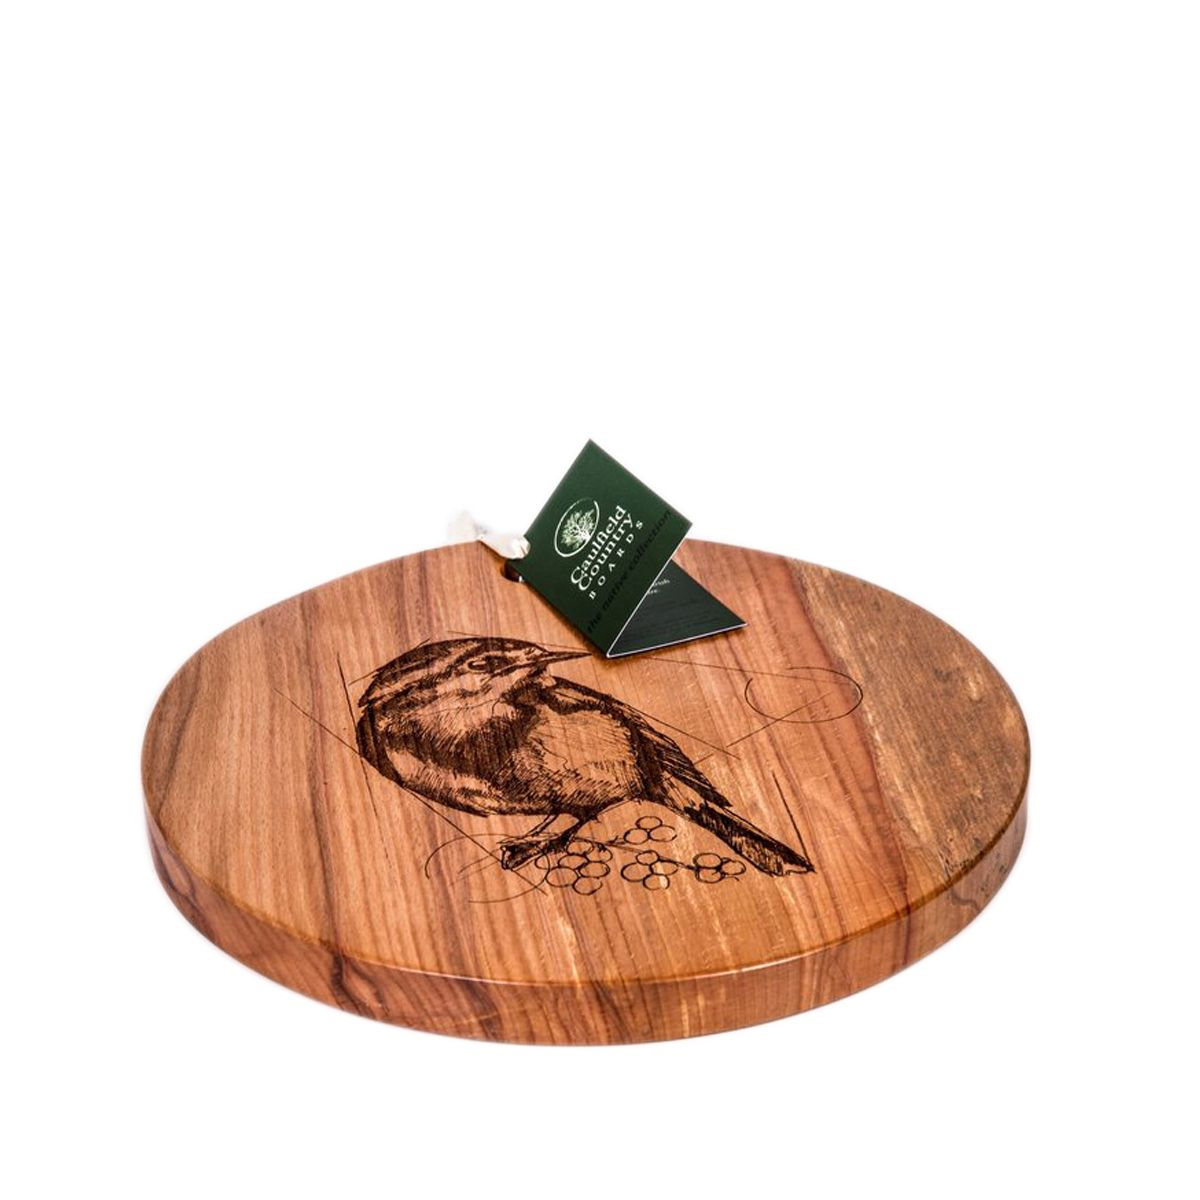 The Robin Round Board